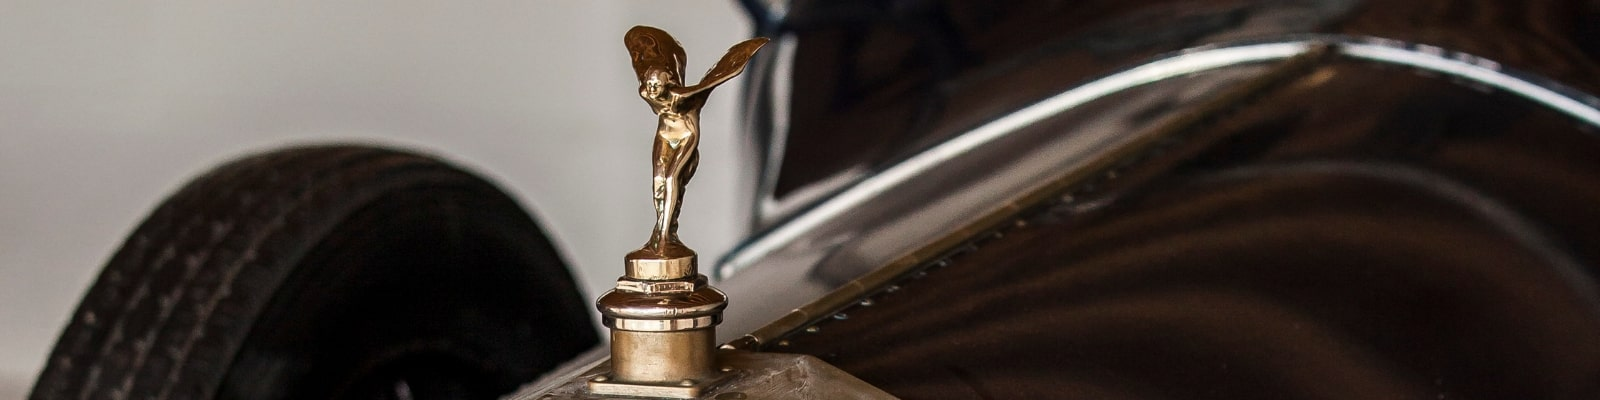 https://www.airfield.ie/wp-content/uploads/2019/01/Rolls-Royce-Silver-Lady-min.jpg